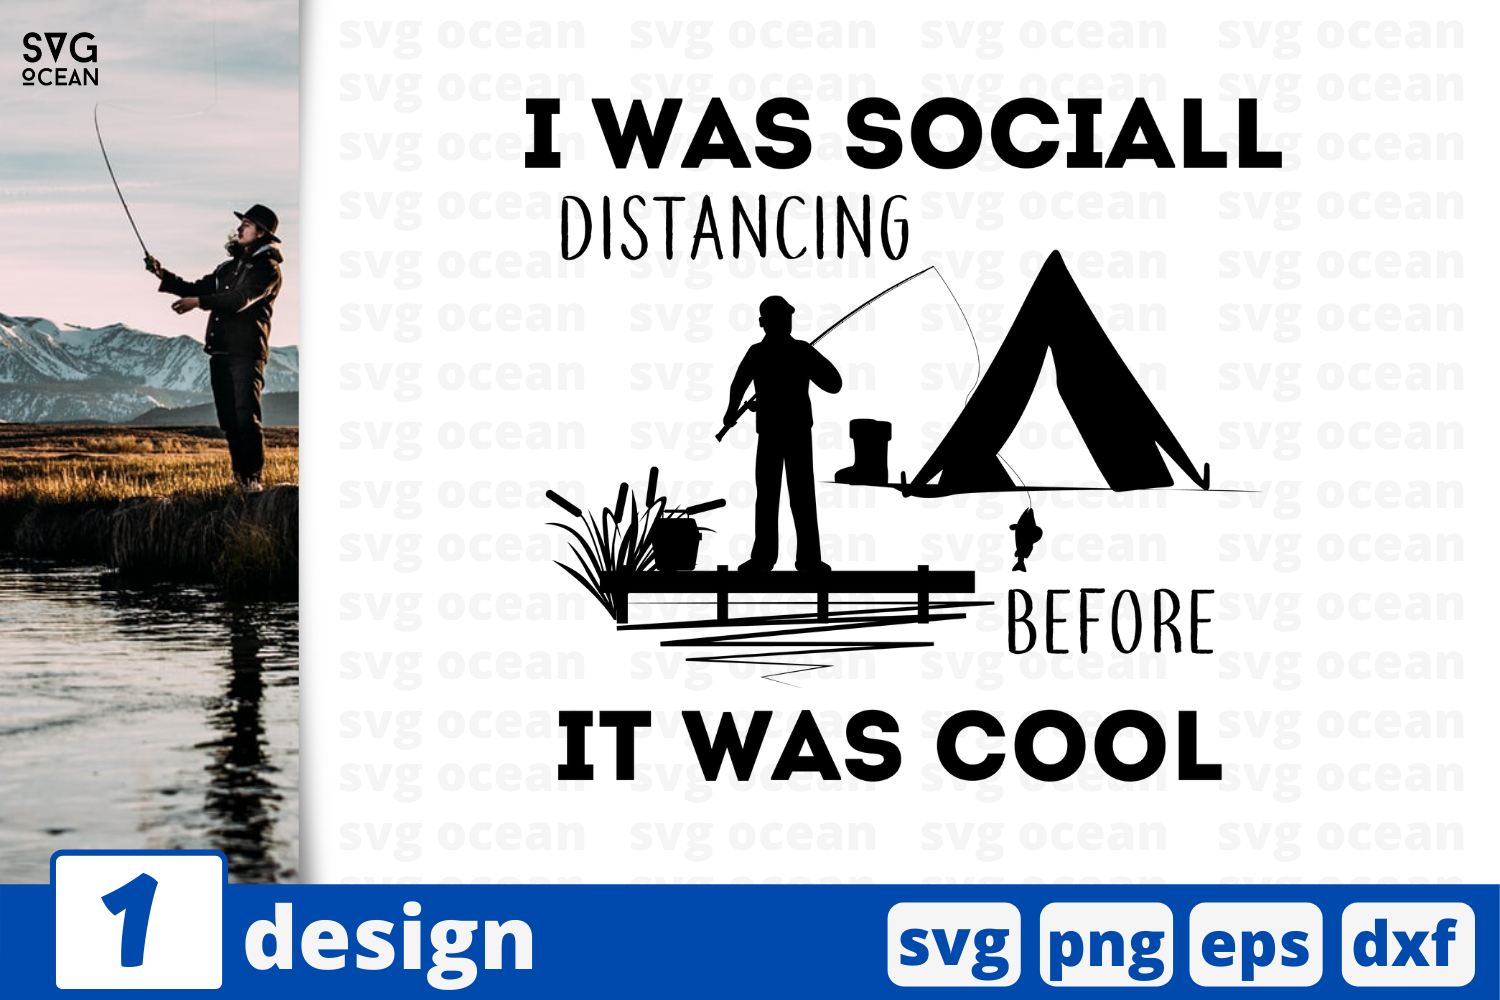 Download Free I Was Social Distancing Before Graphic By Svgocean Creative for Cricut Explore, Silhouette and other cutting machines.